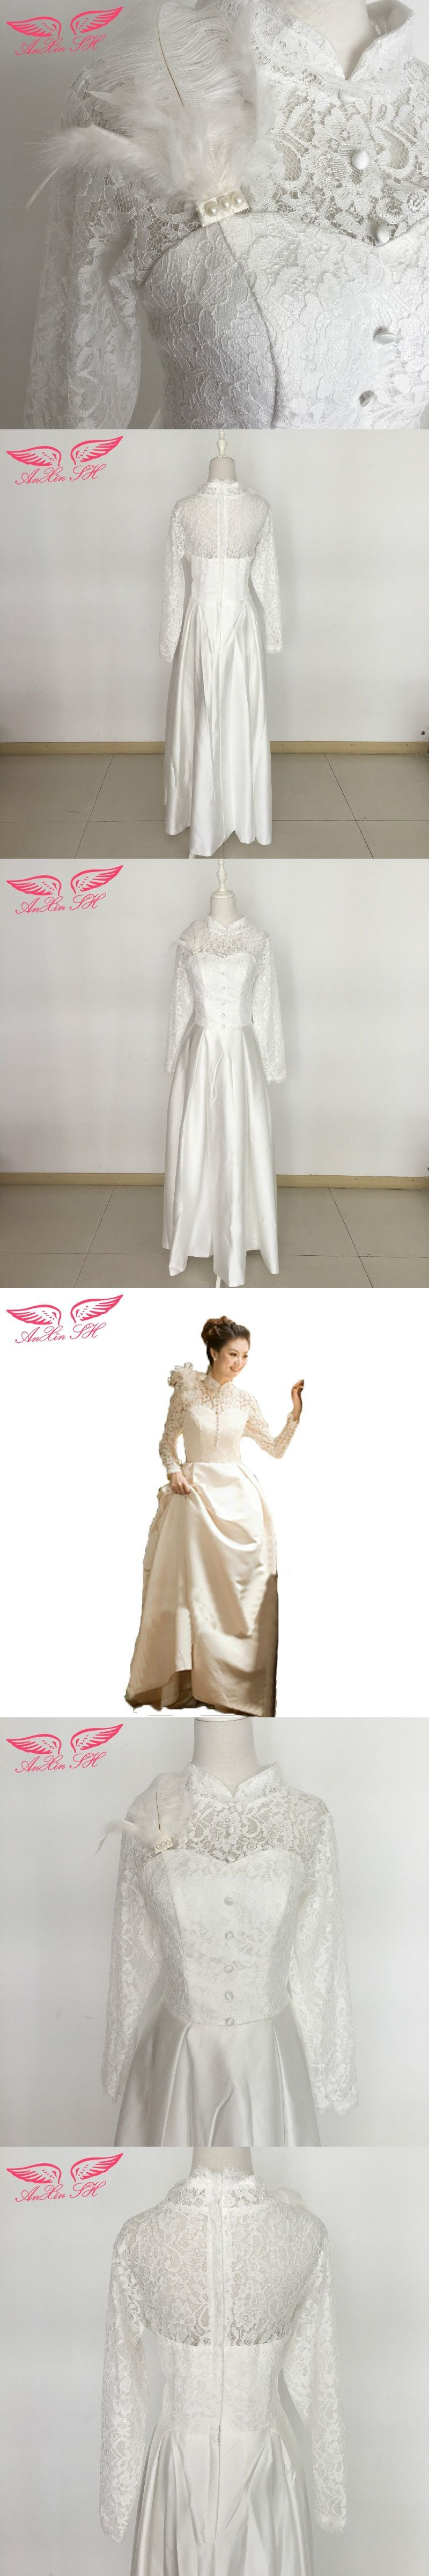 Anxin sh spring bridal wedding dress korean long sleeve lace wedding